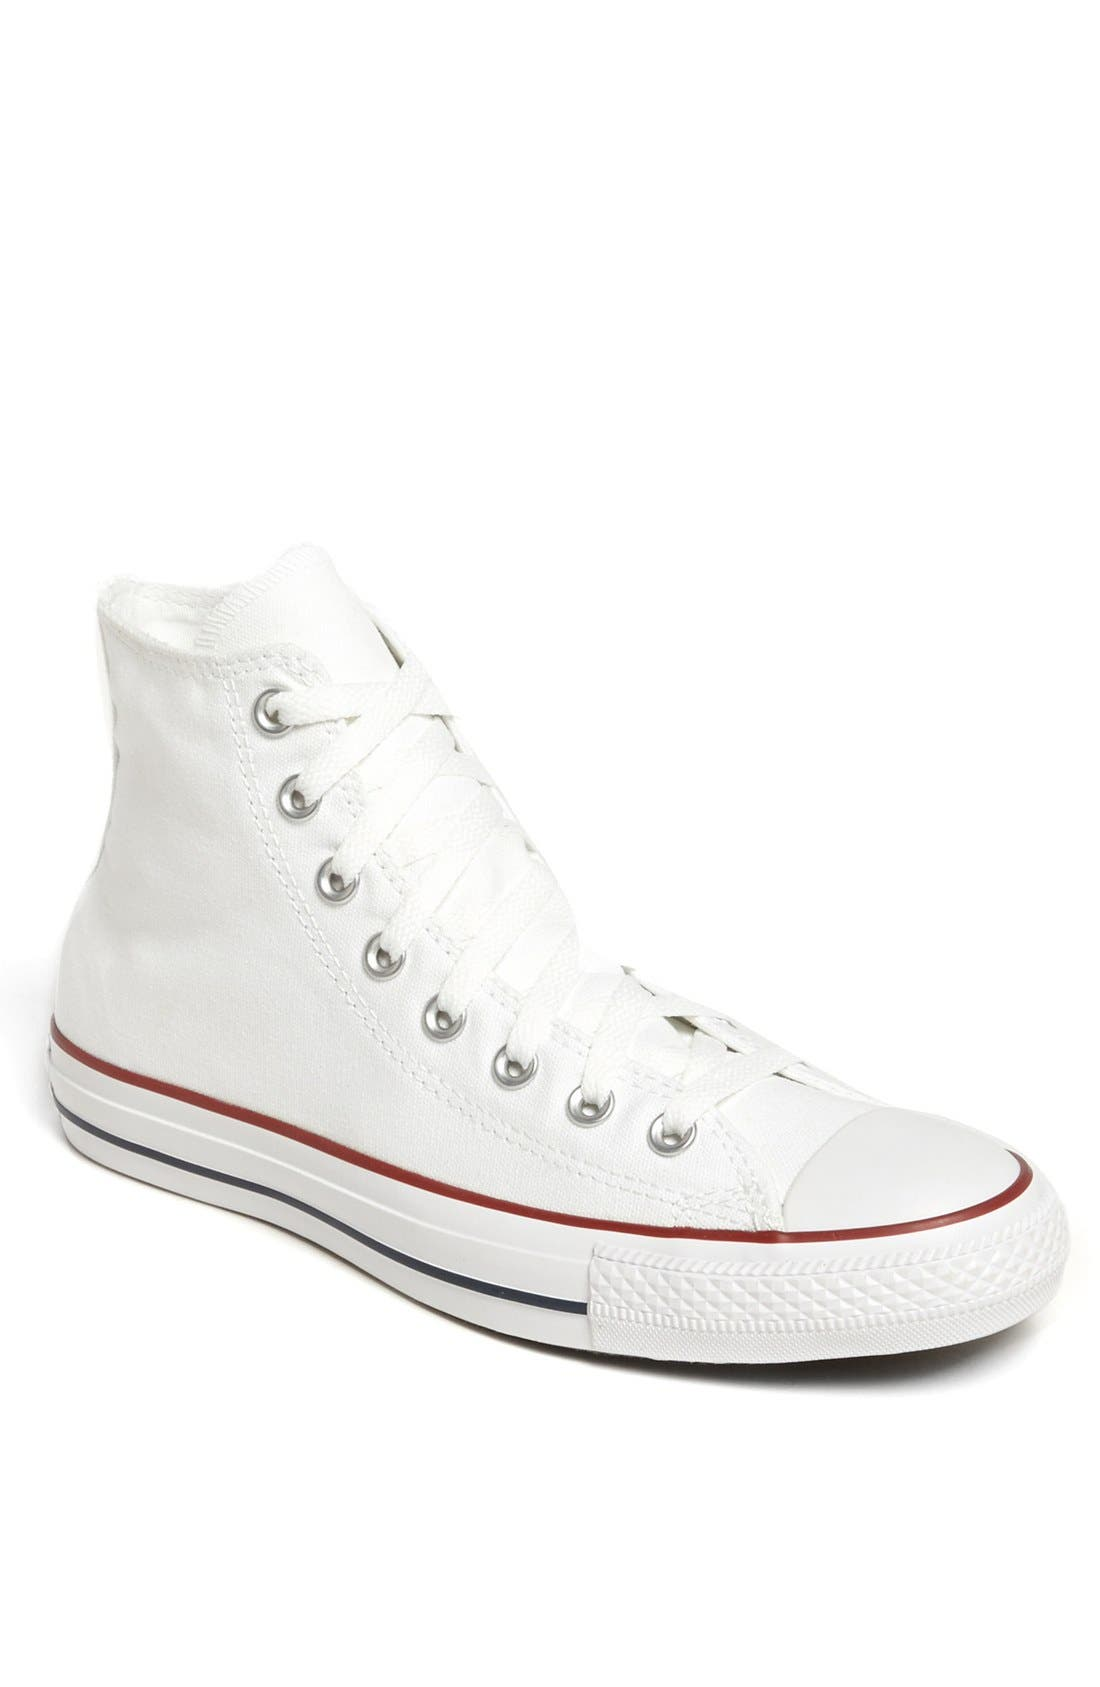 converse high tops white. converse chuck taylor® high top sneaker. black; optic white tops white